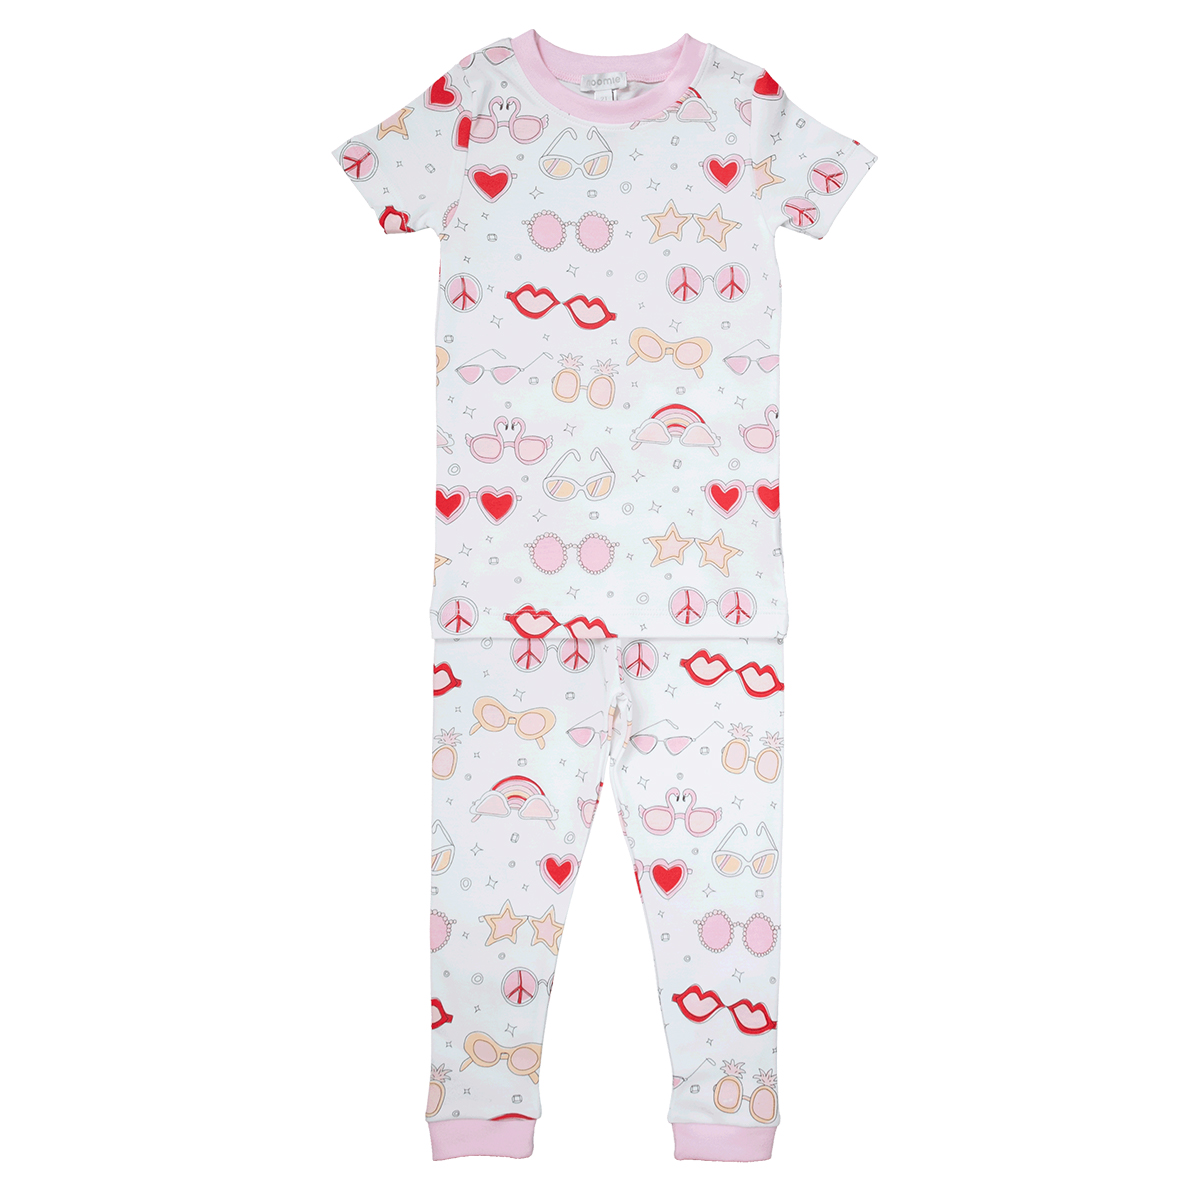 Baby Noomie Two Piece PJ Short Sleeves/Pants Set- Pink Shades